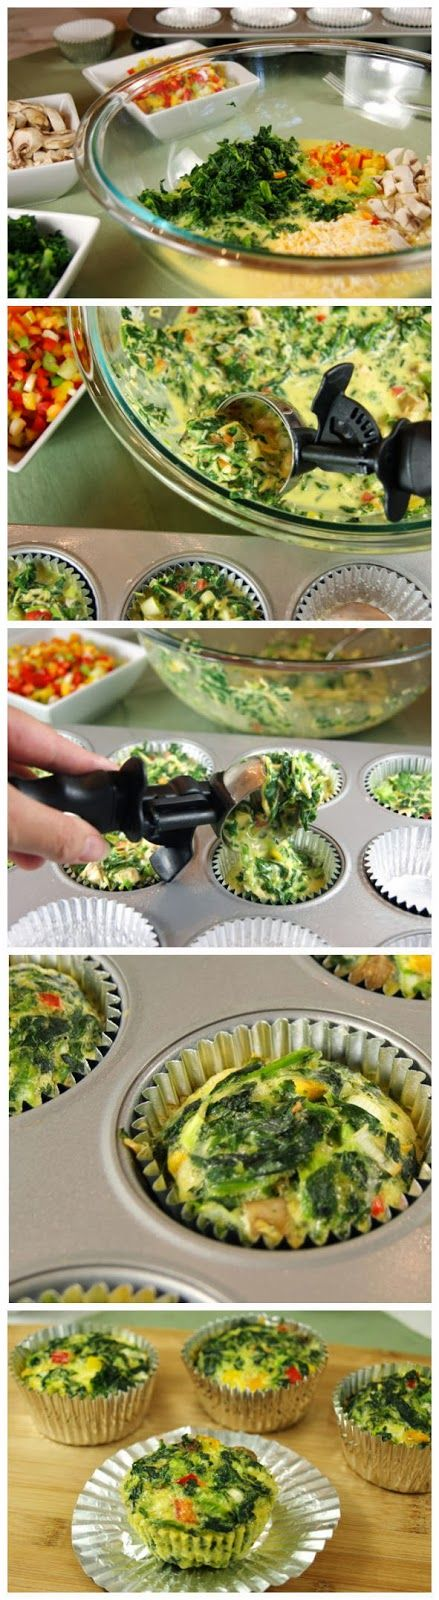 Vegetable Quiche Cups To-Go // make a bunch for grab 'n go meals throughout the week & freeze extras #organize #protein #lowcarb